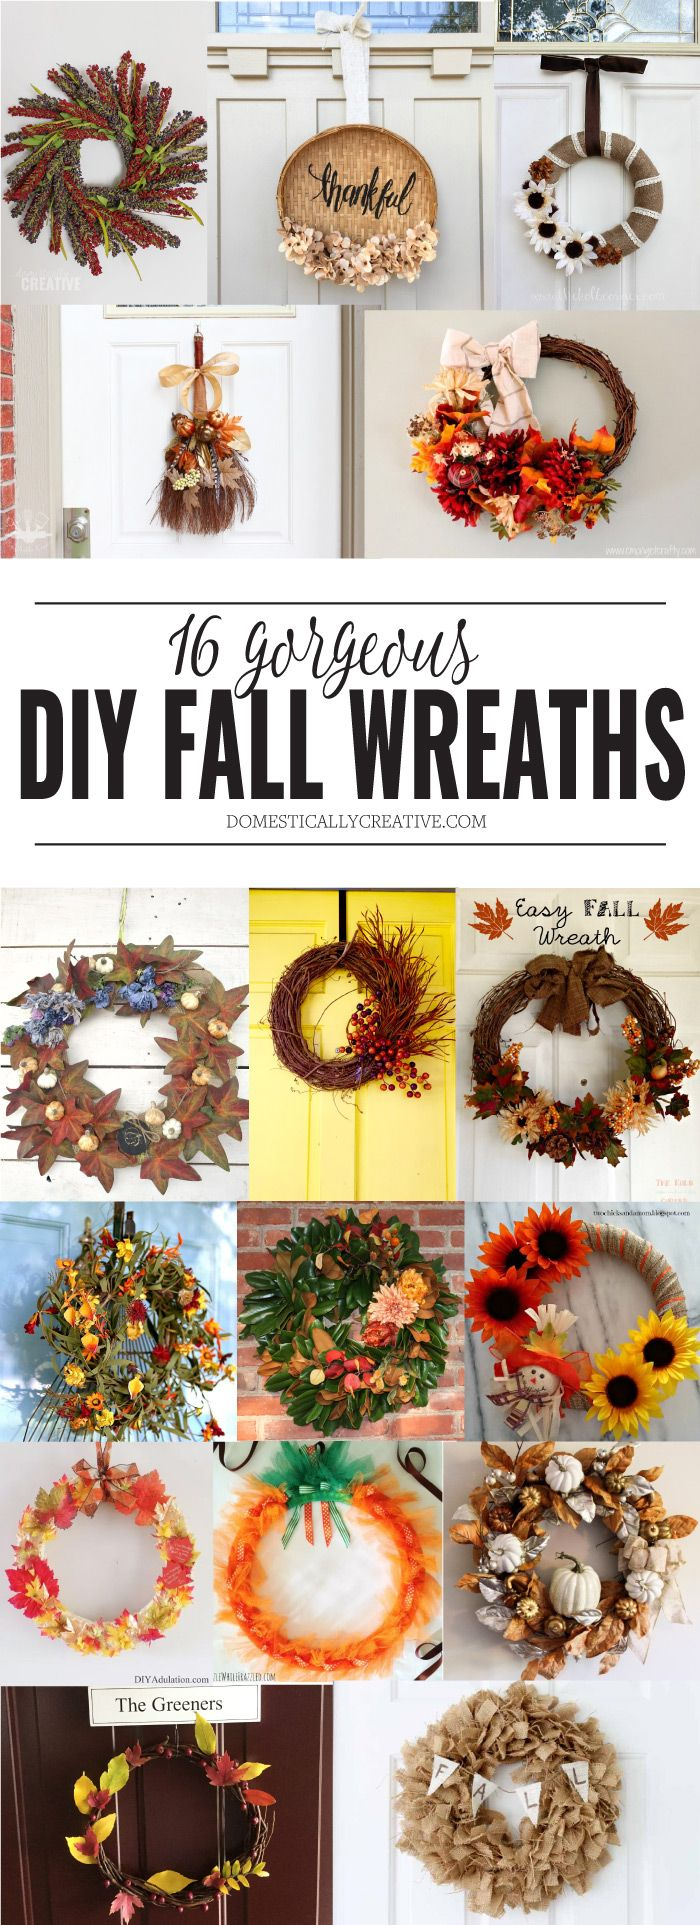 16 gorgeous DIY fall wreaths